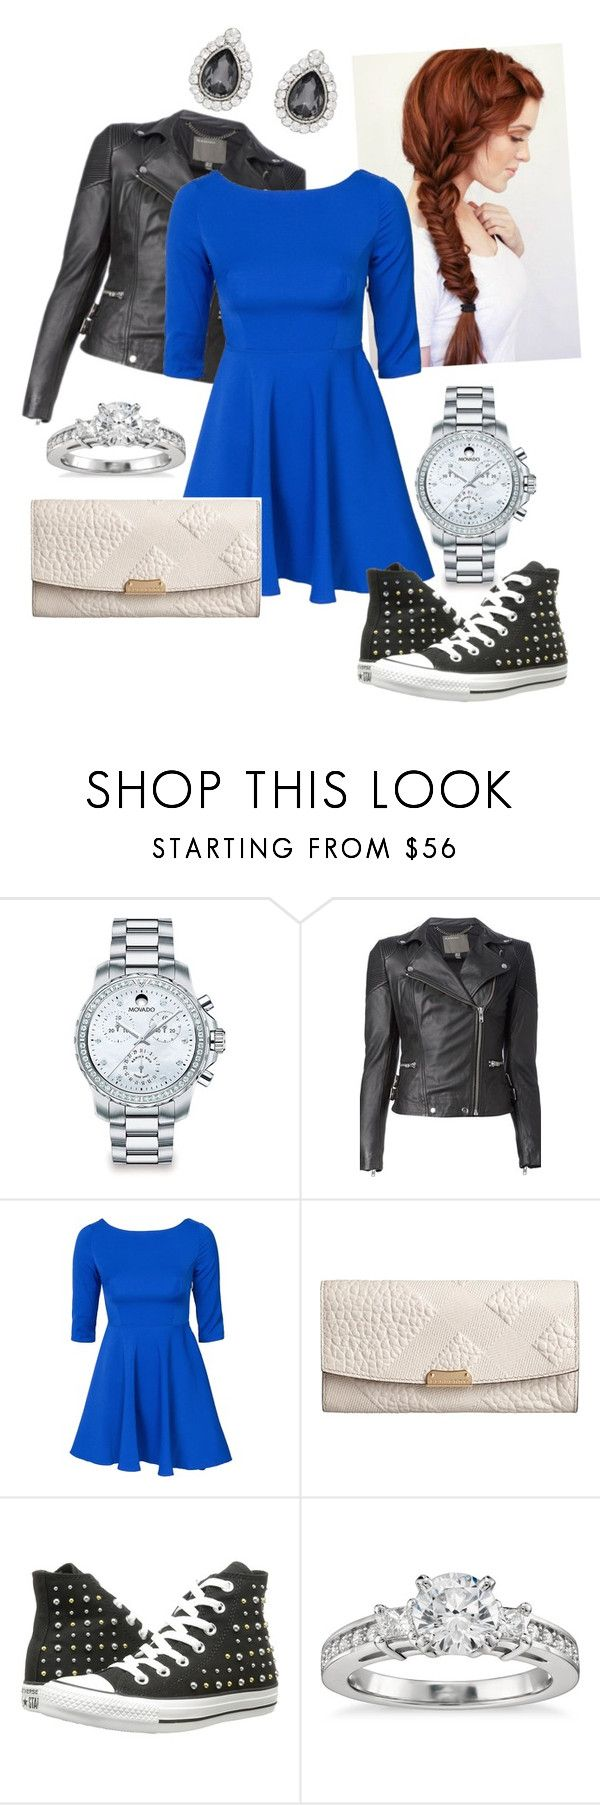 """""""Shopping"""" by llamallamaduckgirl ❤ liked on Polyvore featuring Movado, Ultimate, MuuBaa, Glamorous, Burberry, Converse, Blue Nile and Forever New"""